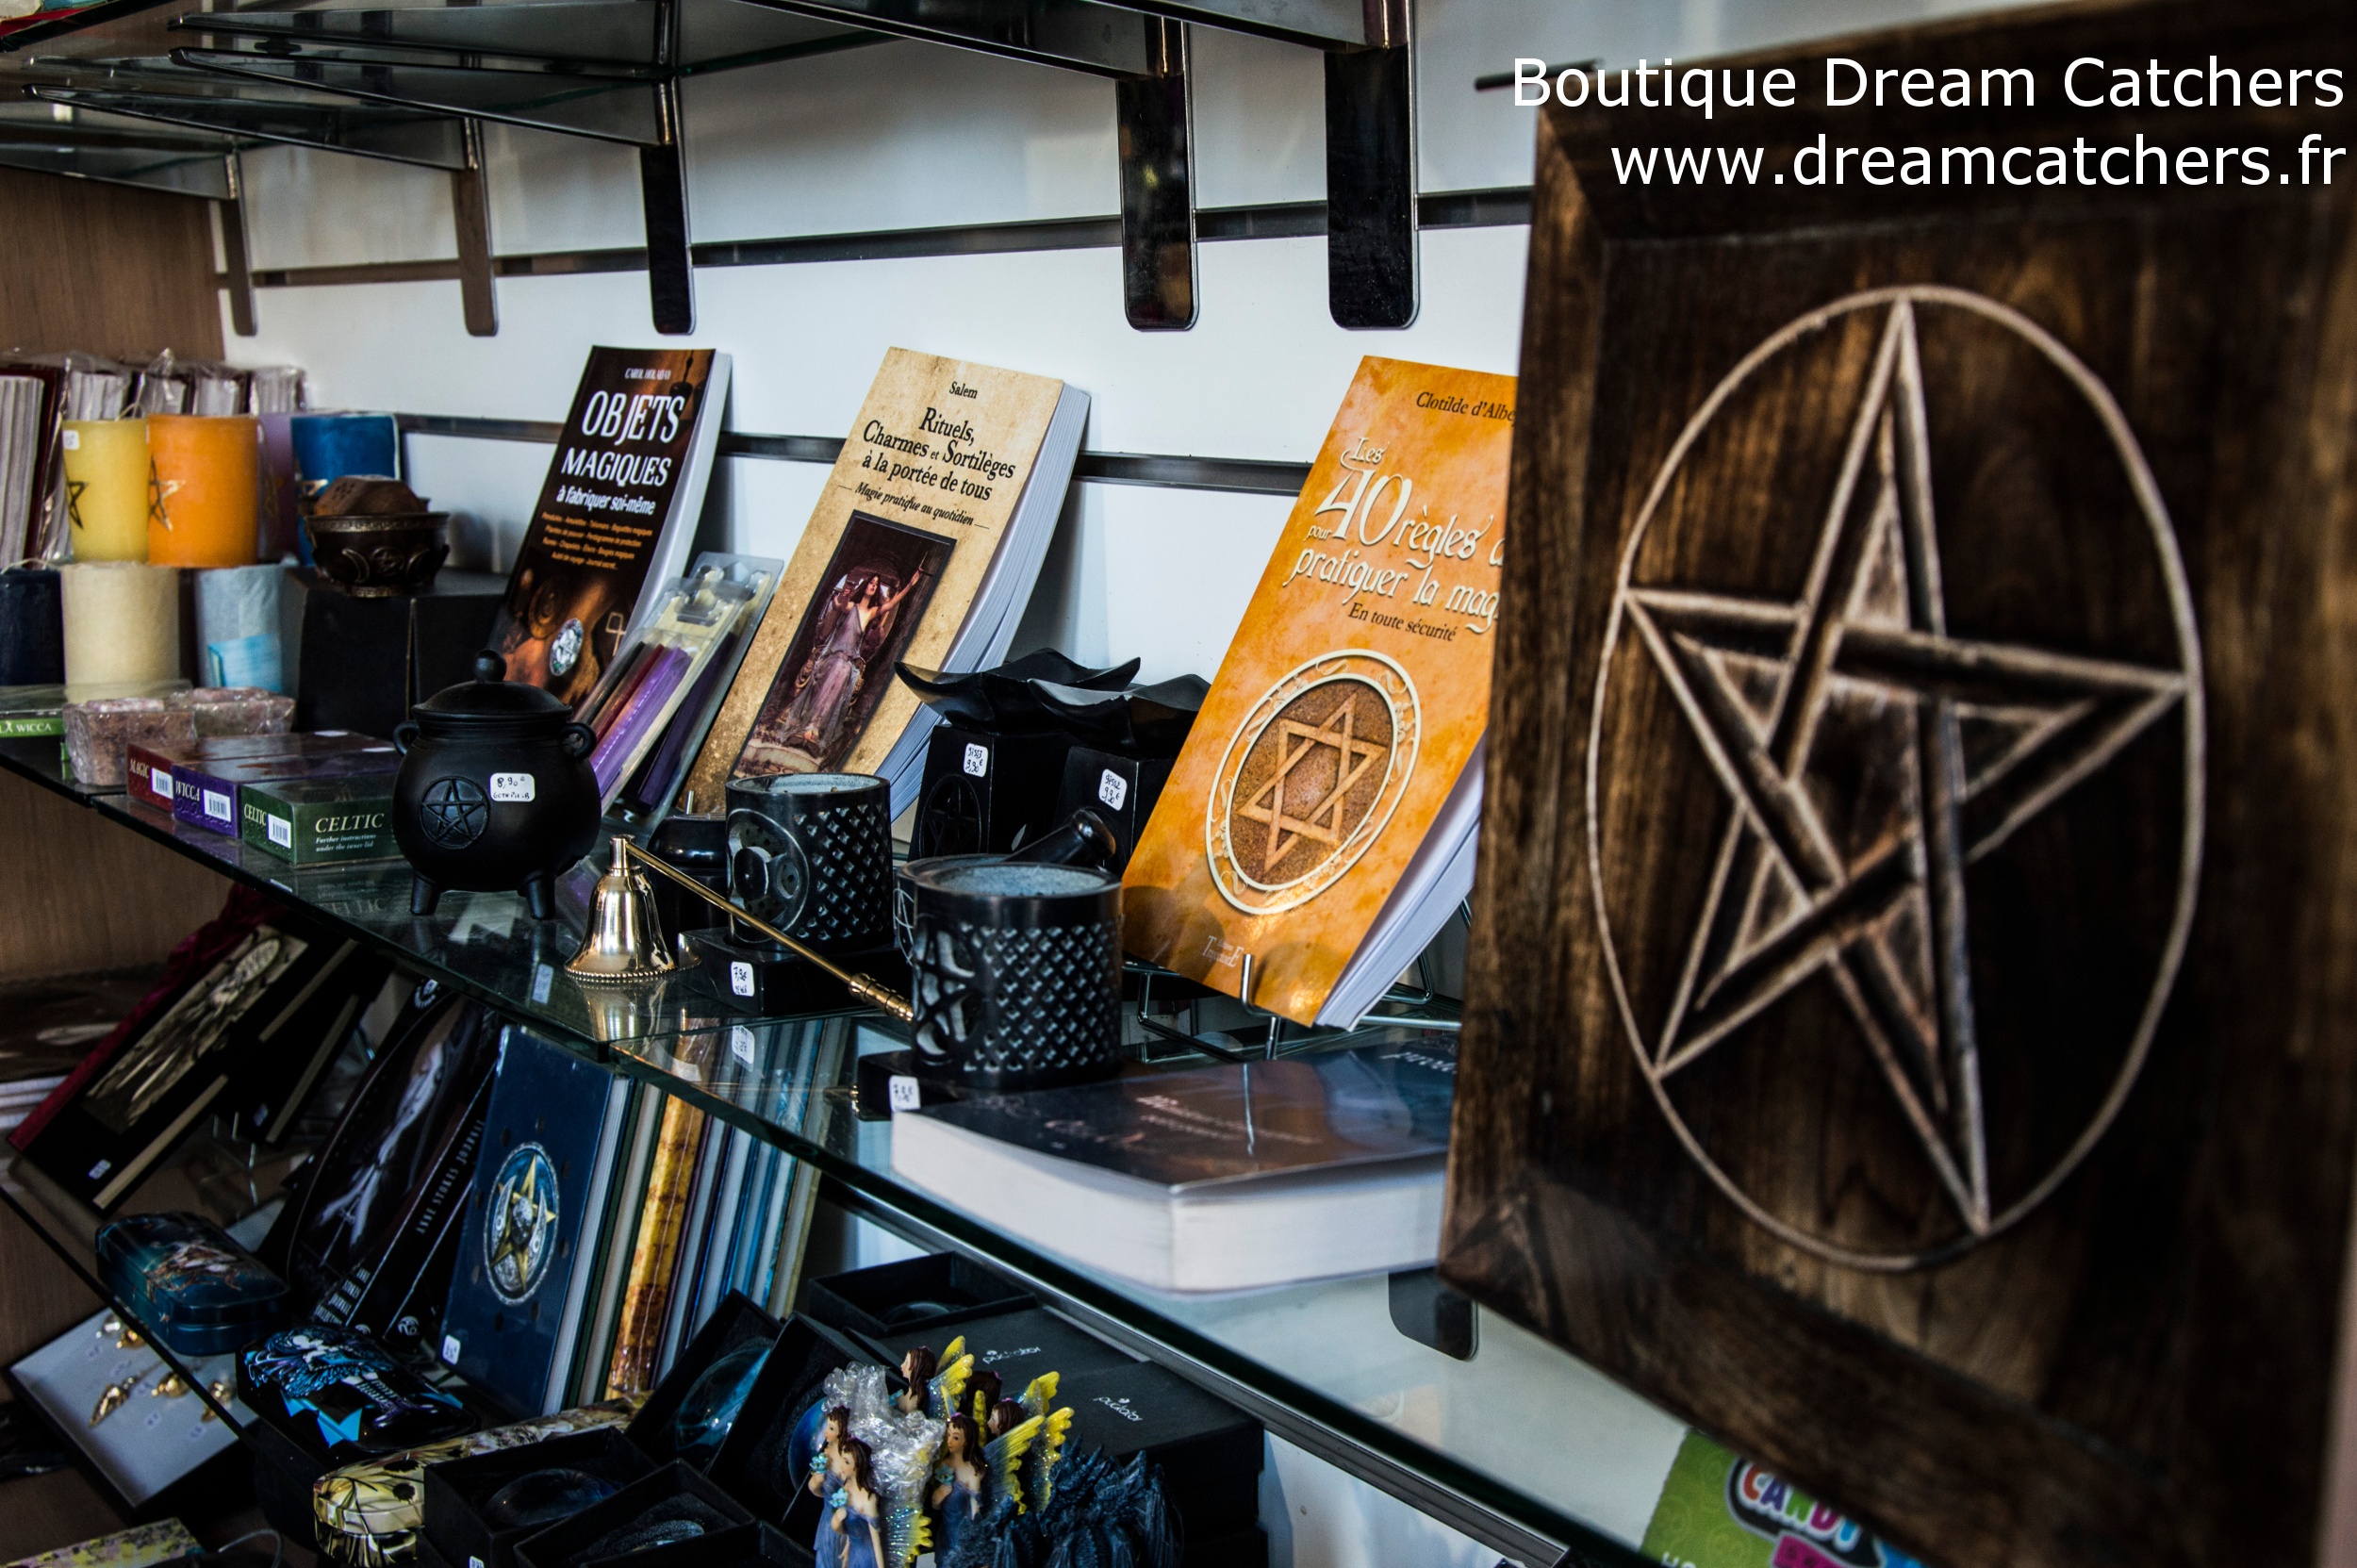 La boutique de Dream Catchers : rayon ésotérique et pagan